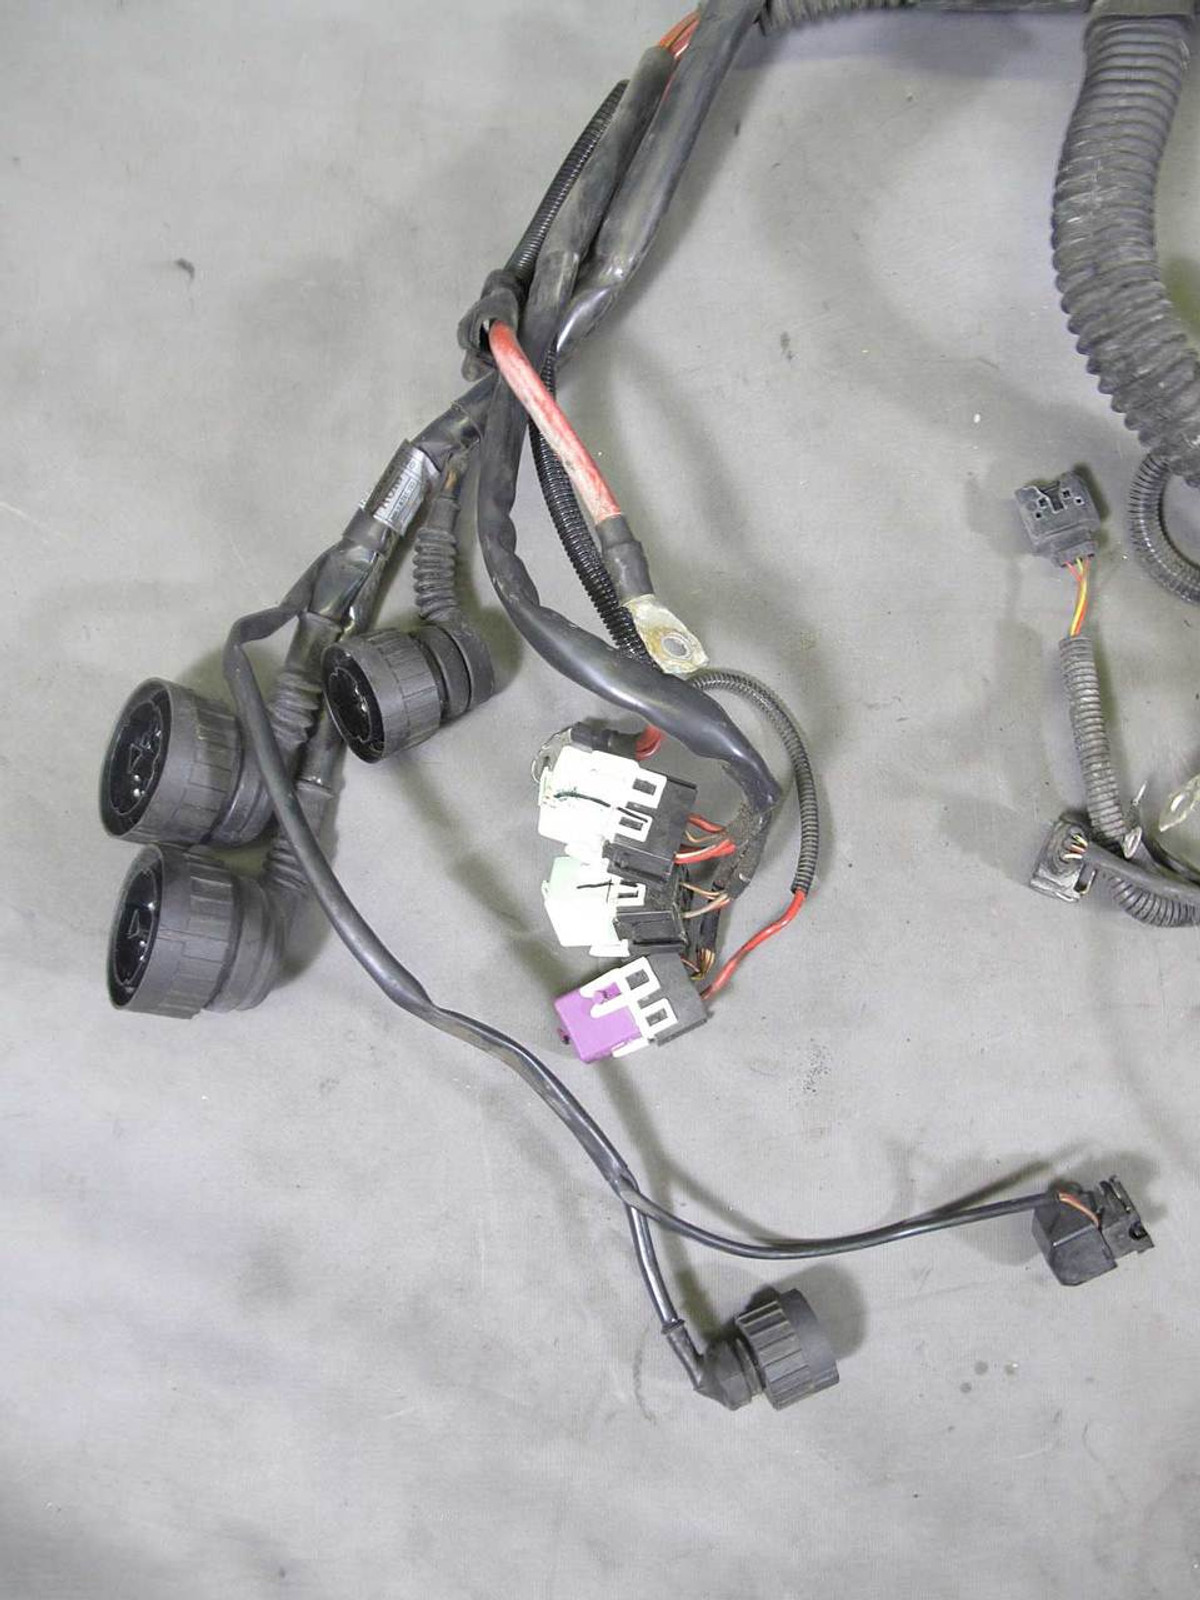 328i wiring harness trusted wiring diagram 2006 bmw 328 bmw 328 front wiring [ 960 x 1280 Pixel ]